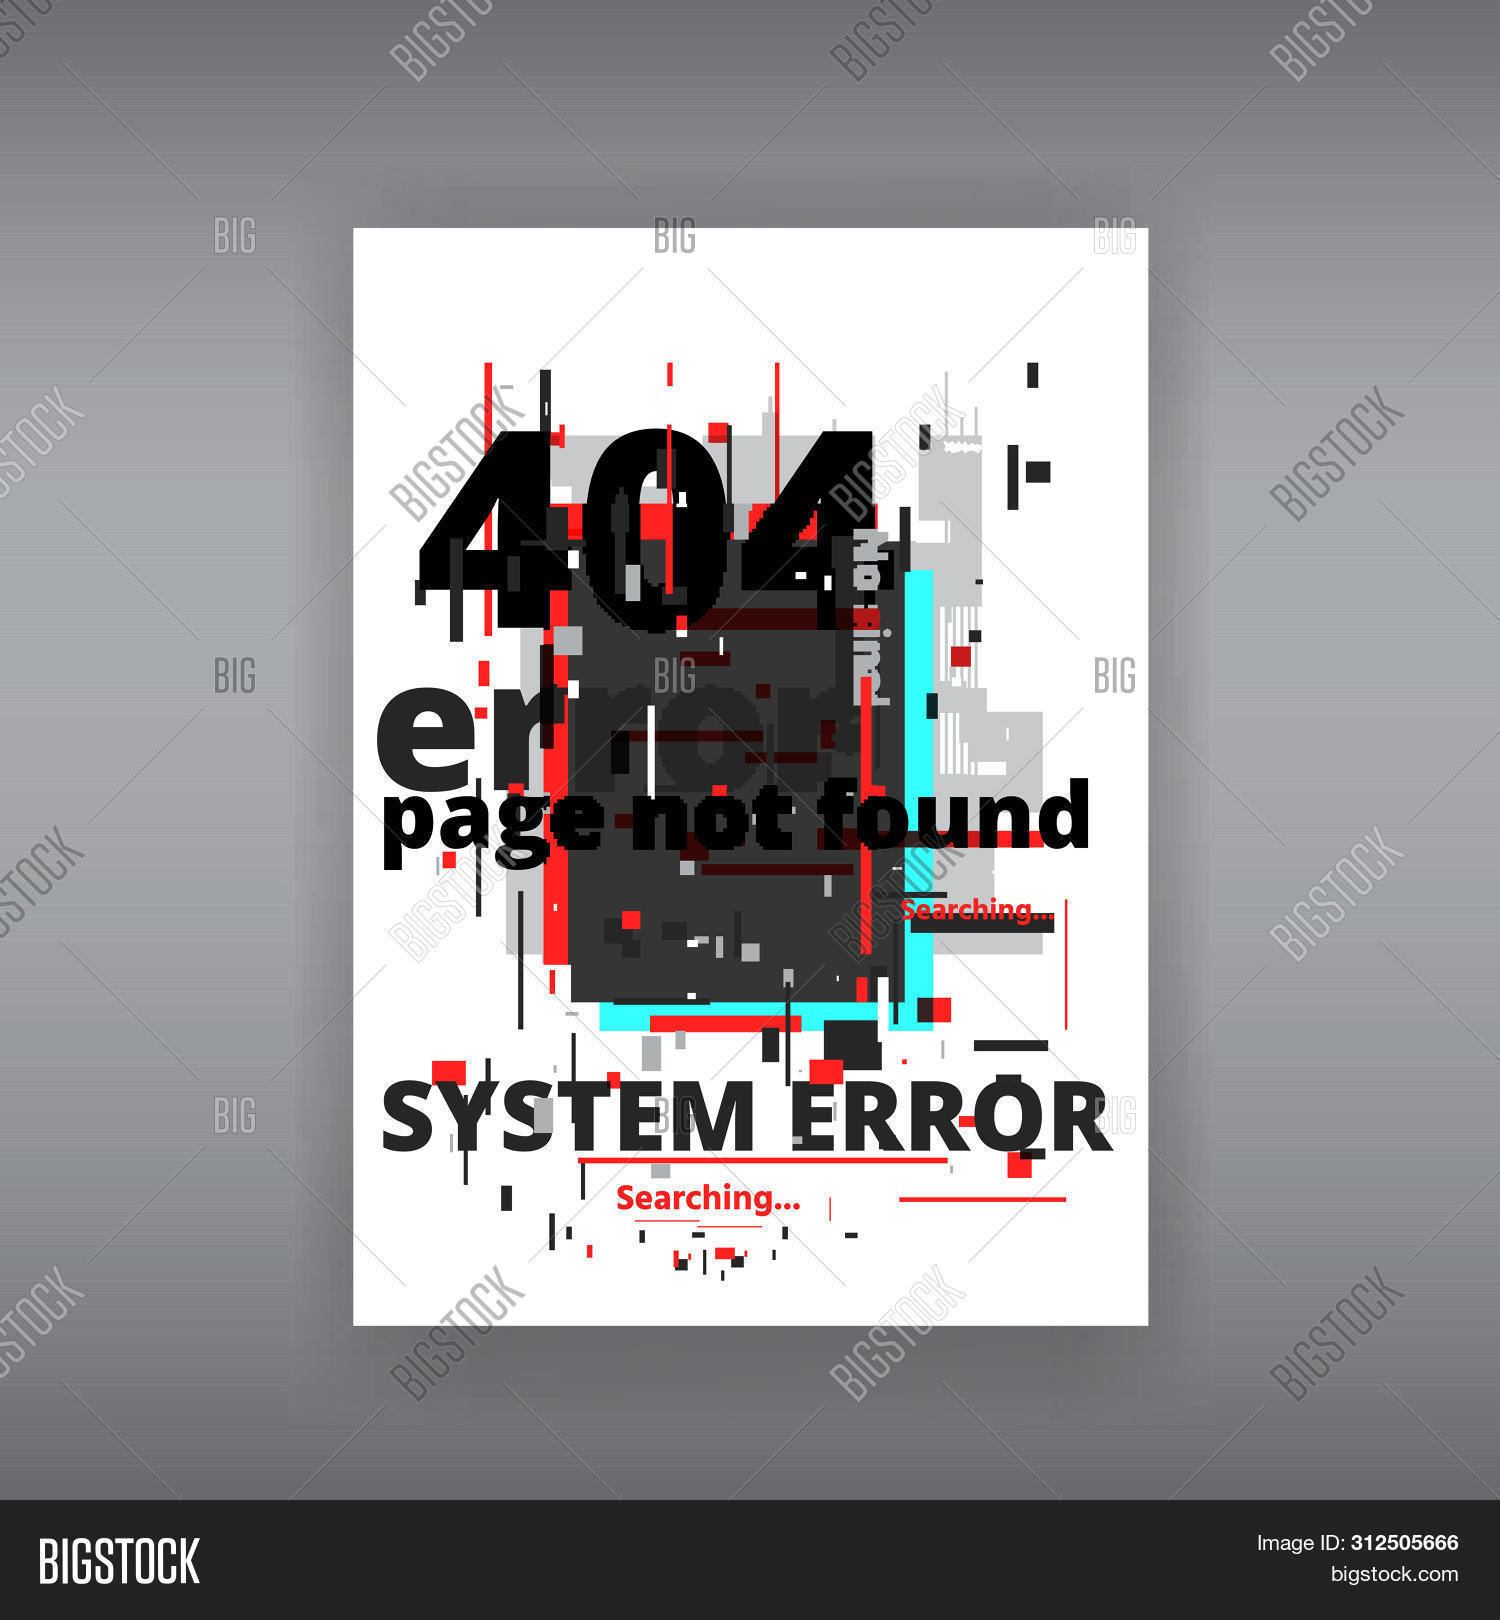 404,alphabet,backdrop,background,banner,black,blue,bug,card,color,concept,design,digital,display,distorted,distortion,effect,element,error,flyer,found,frame,futuristic,geometric,glitch,glitched,graphic,illustration,line,minimal,modern,no,noise,not,page,pause,pixel,poster,retro,screen,sign,signal,symbol,system,technology,trendy,tv,type,vector,website